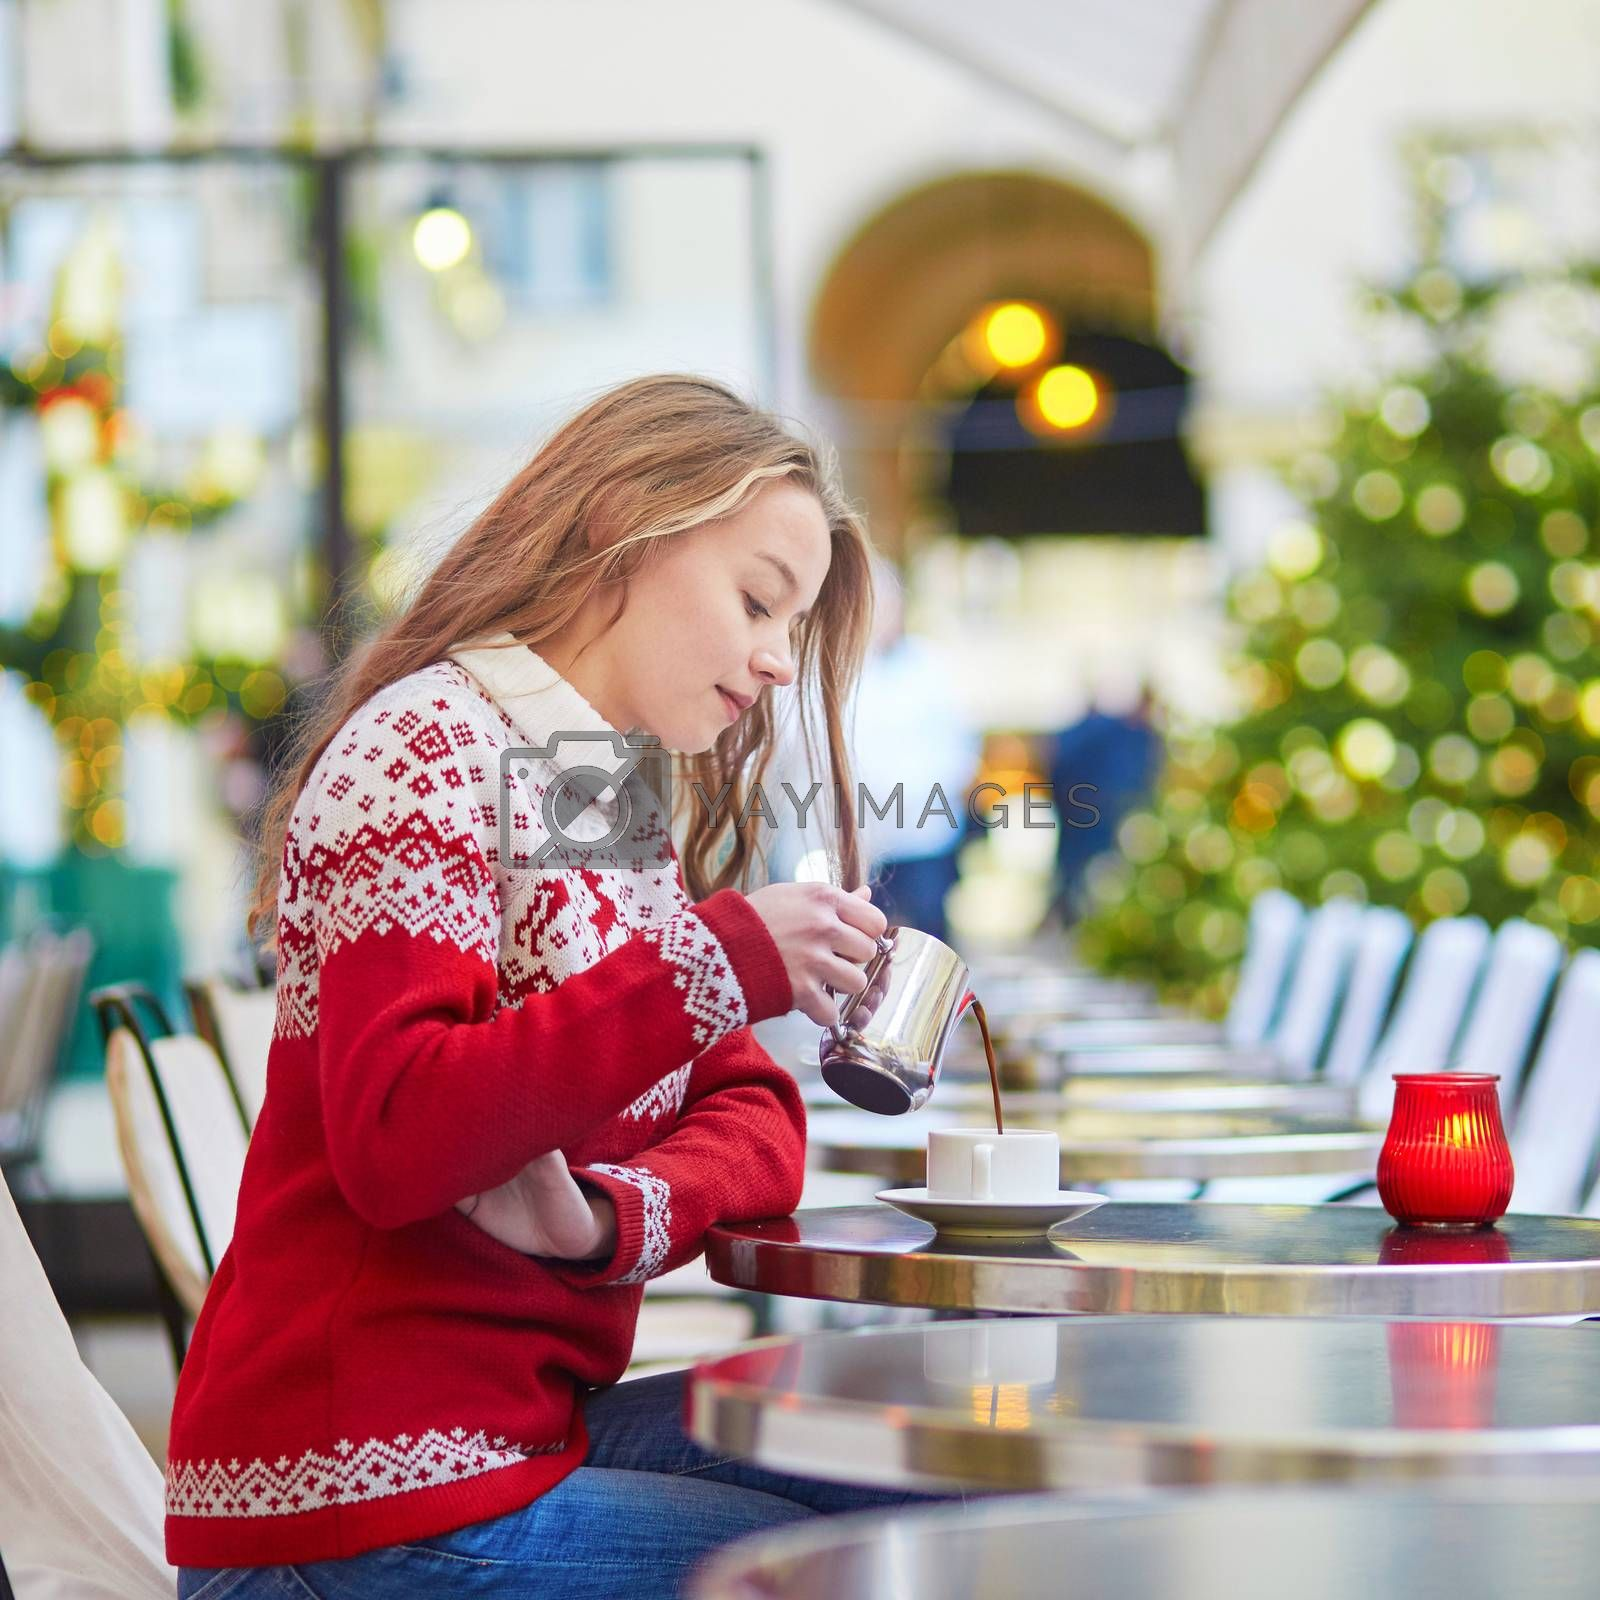 Cheerful young woman drinking hot chocolate in a cozy outdoor Parisian cafe decorated for Christmas